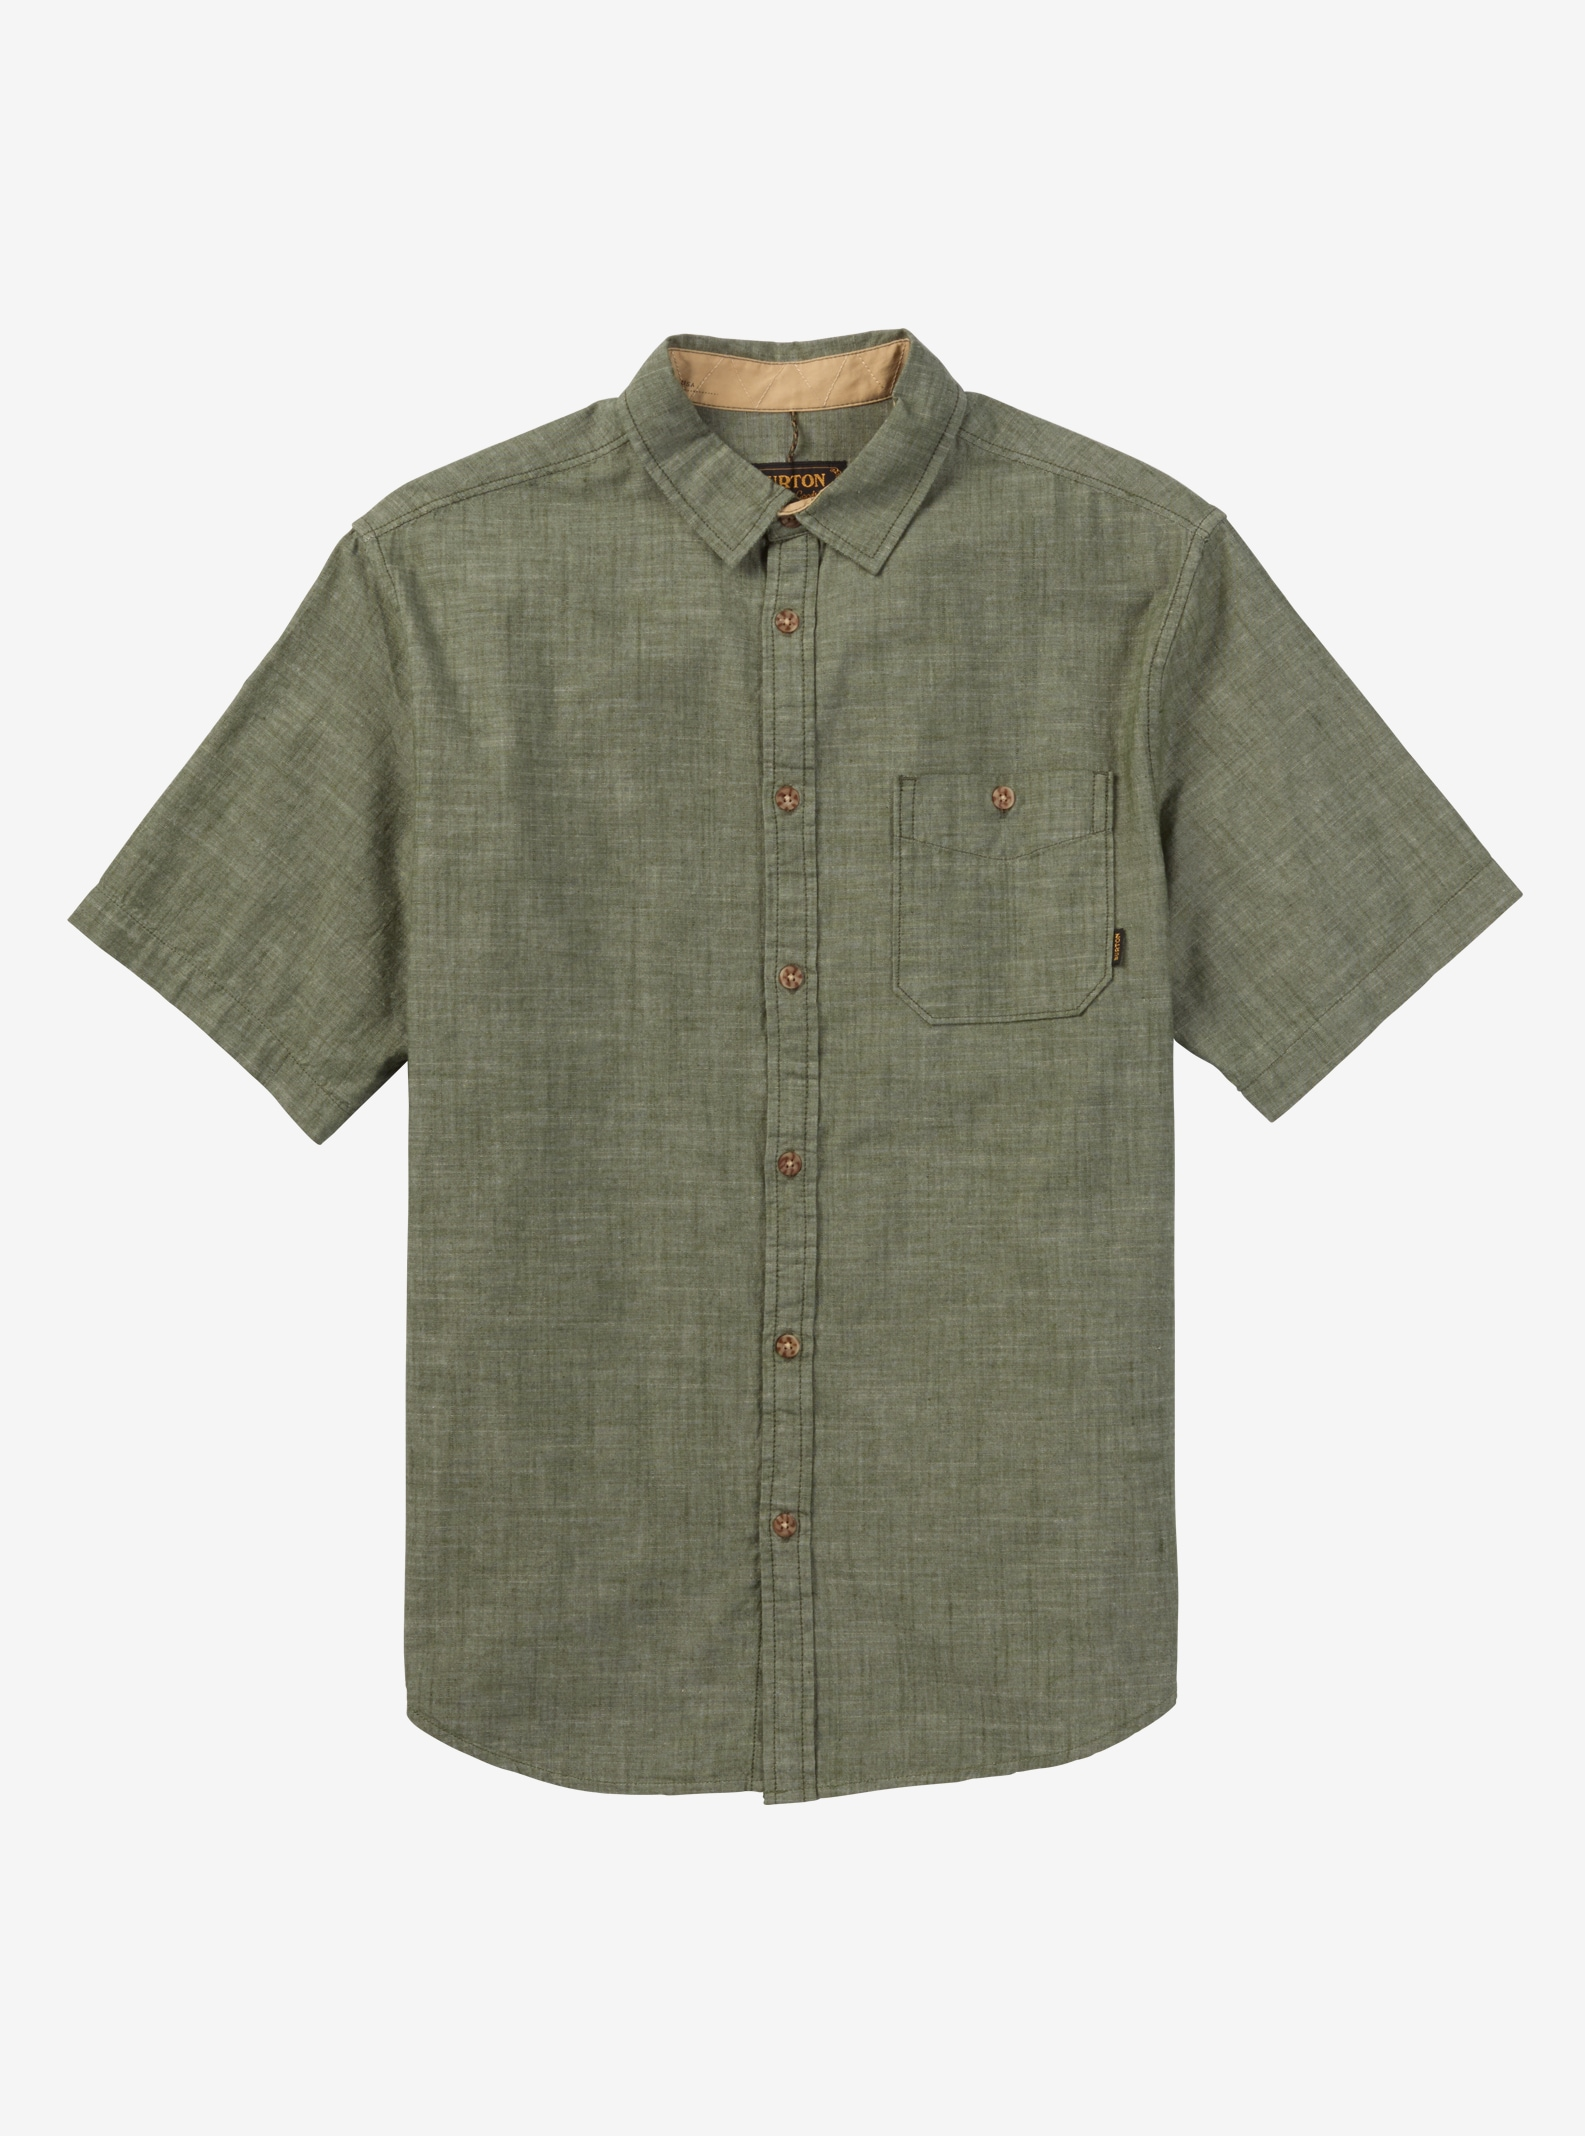 Burton Slayton Short Sleeve Shirt shown in Rifle Green